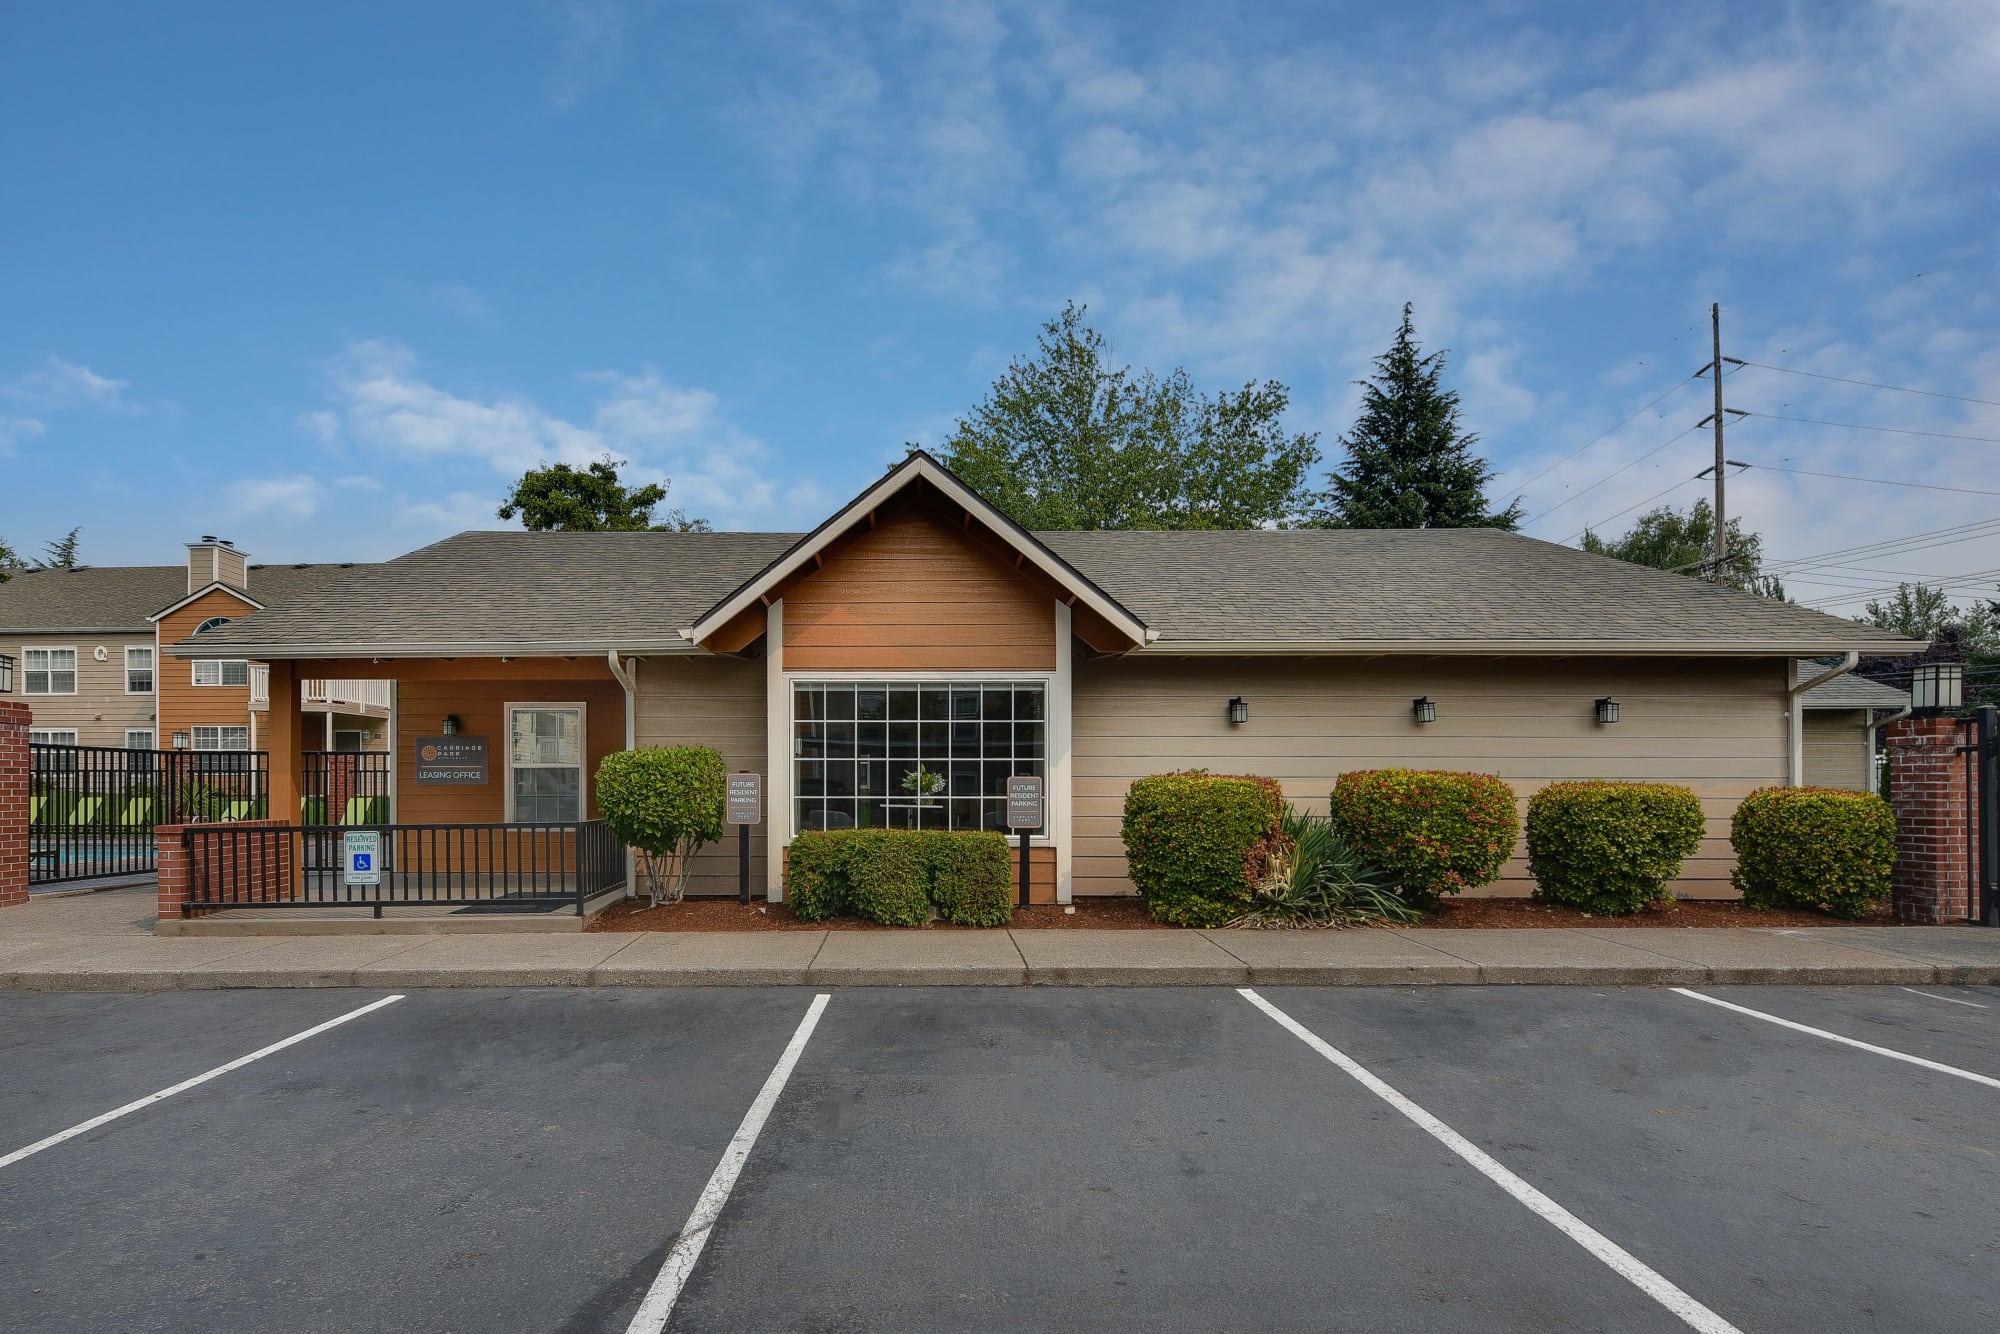 The front exterior of the leasing office at Carriage Park Apartments in Vancouver, Washington